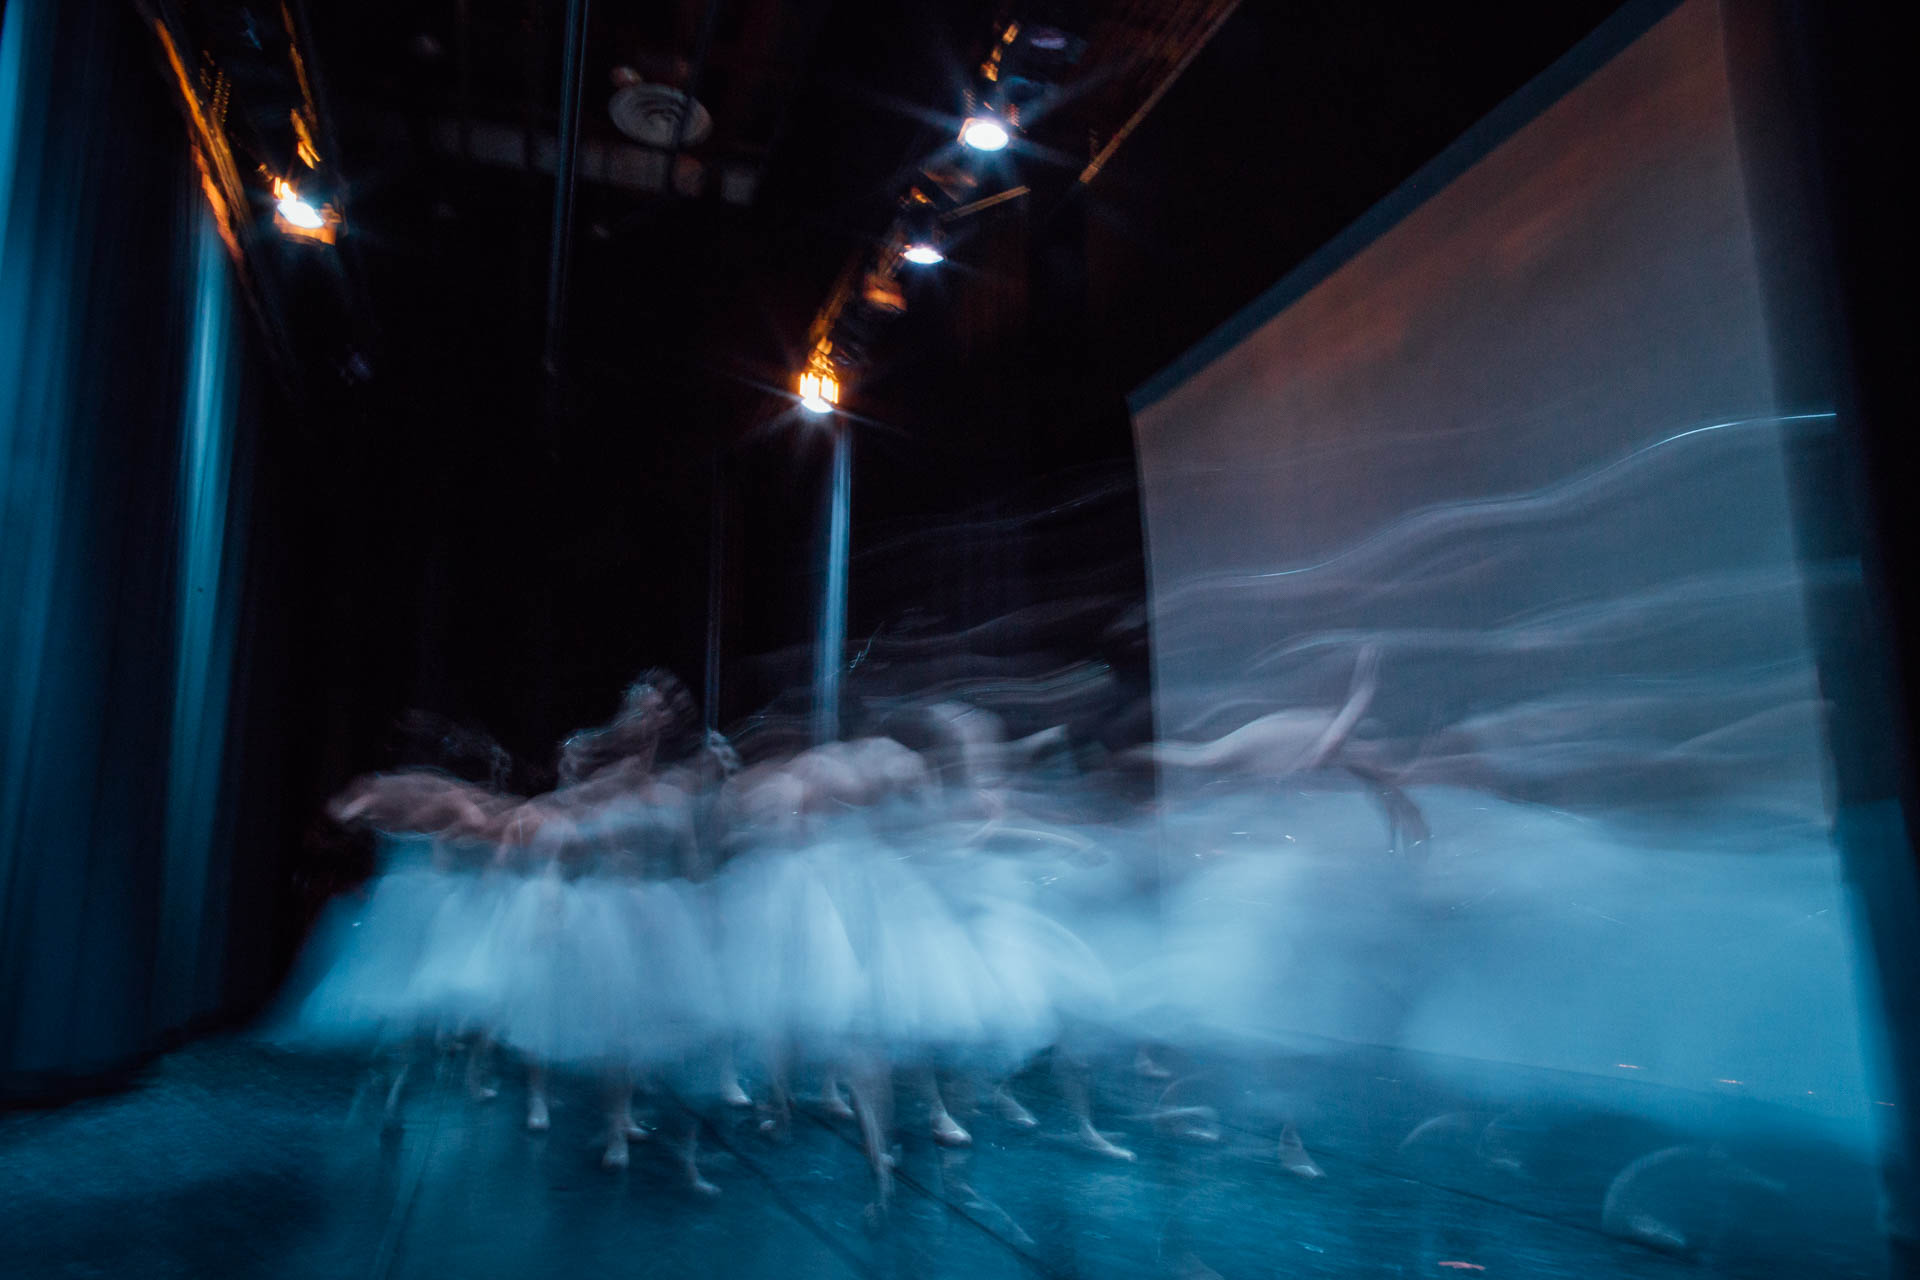 nutcracker-ballet-snowflakes-rushing-off-stage-7576